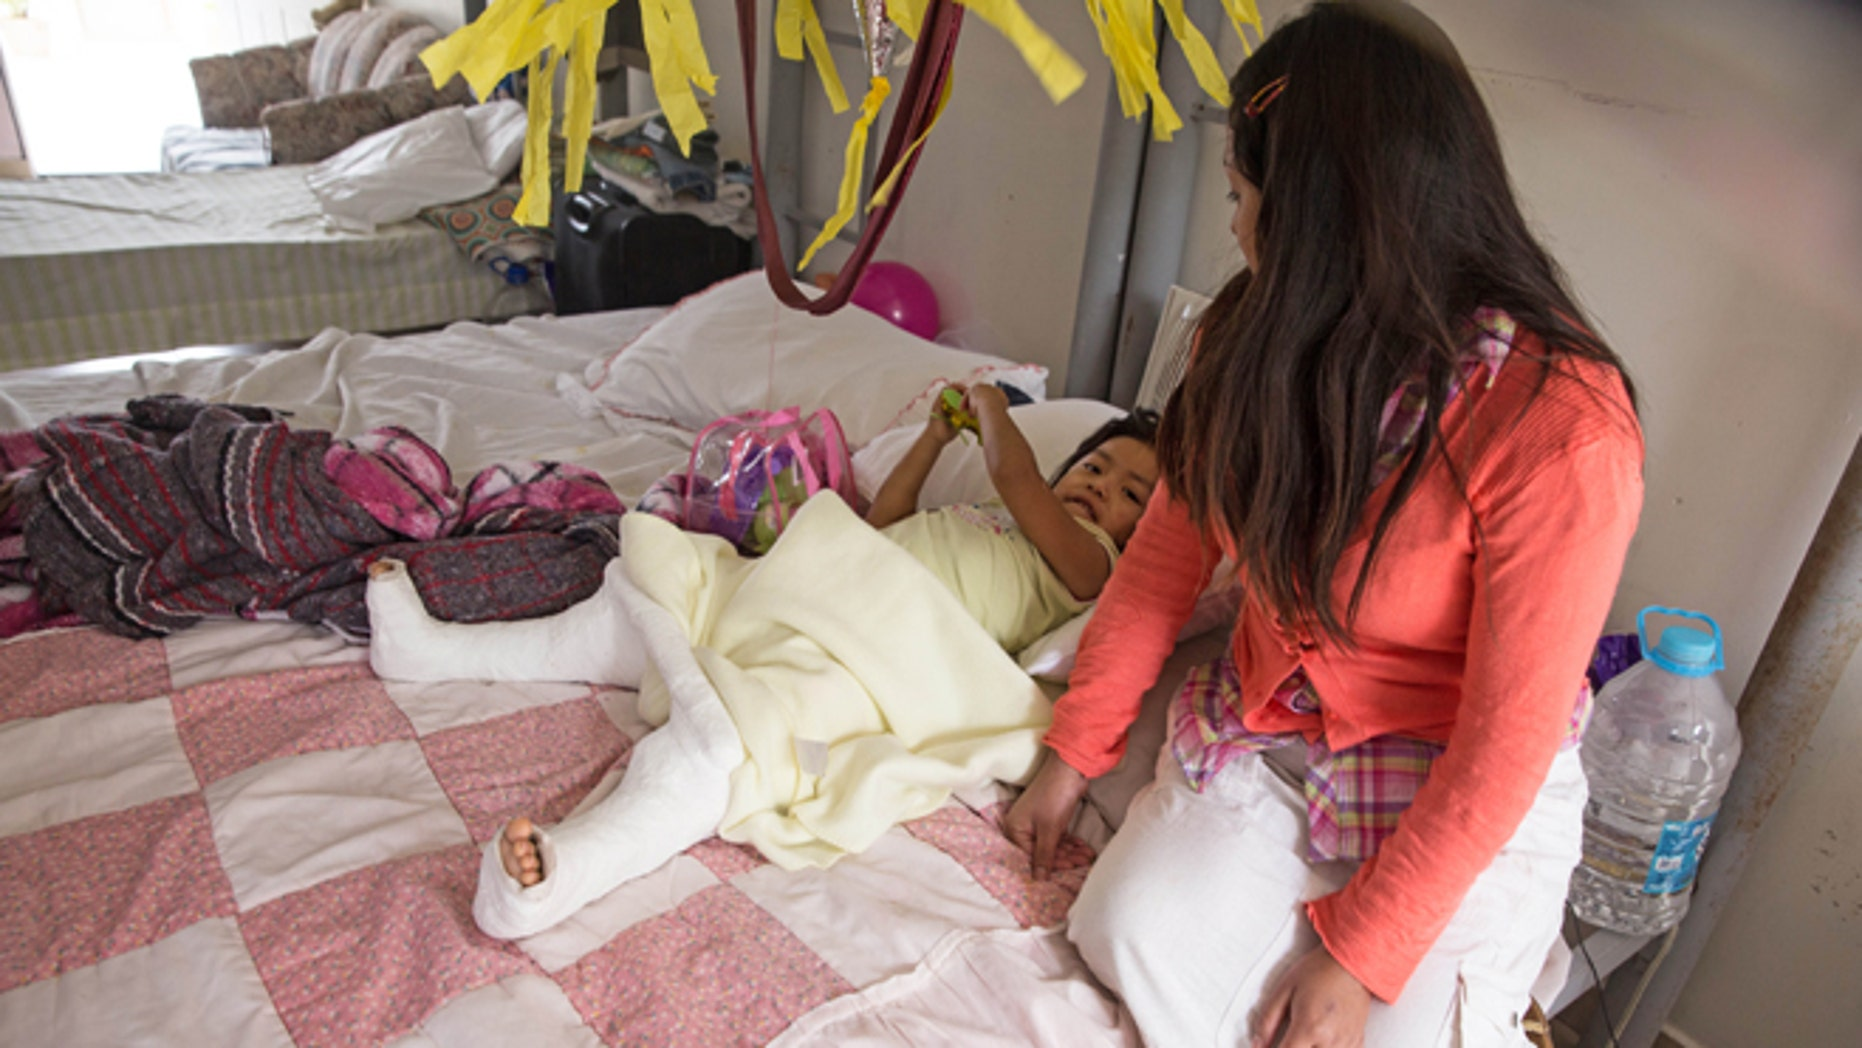 """In this Dec. 15, 2015, photo, Marleny Gonzalez, right, looks at her 4-year-old daughter, Jenifer, at a shelter in Reynosa, Mexico, where they are living after trying to cross in to the United States. Gonzalez said her daughter suffered two broken legs when a truck they were traveling in overturned on the journey from Guatemala. âAlmost all my family is in the United States,â Gonzalez said, including her daughterâs father. âI felt alone,"""" she said. Given her daughterâs precarious state, she wasnât sure whether she would make the rest of the trip. (AP Photo/Seth Robbins)"""